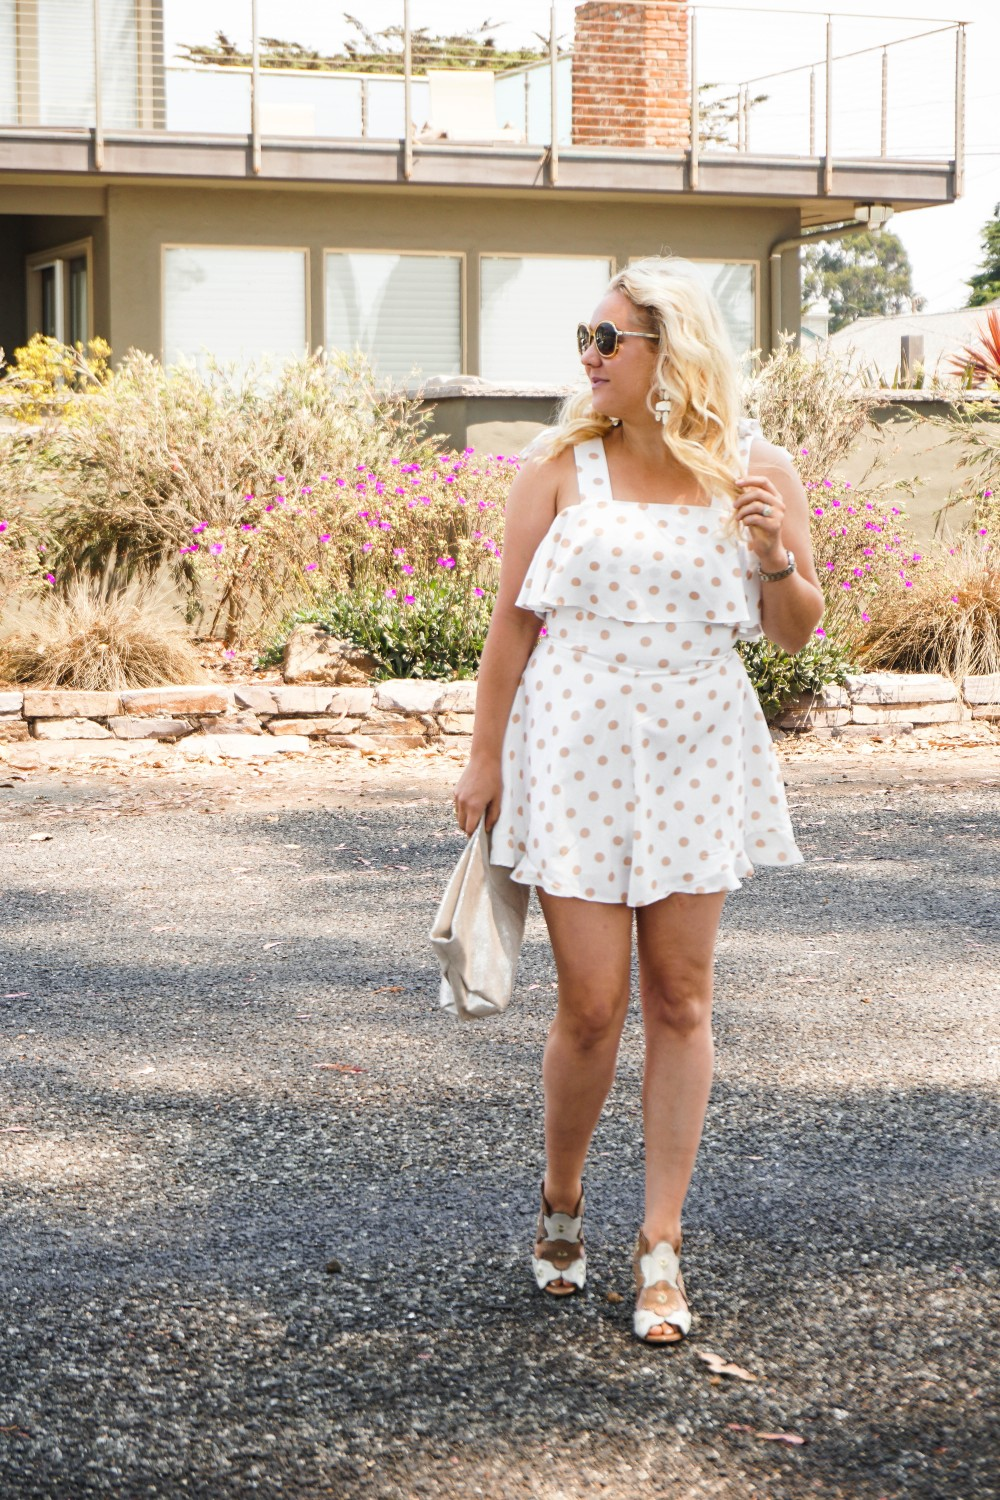 Polka Dot Romper, Saks Off Fifth, Summer Style, Outfit Inspiration, Chloe Sunglasses, Have Need Want